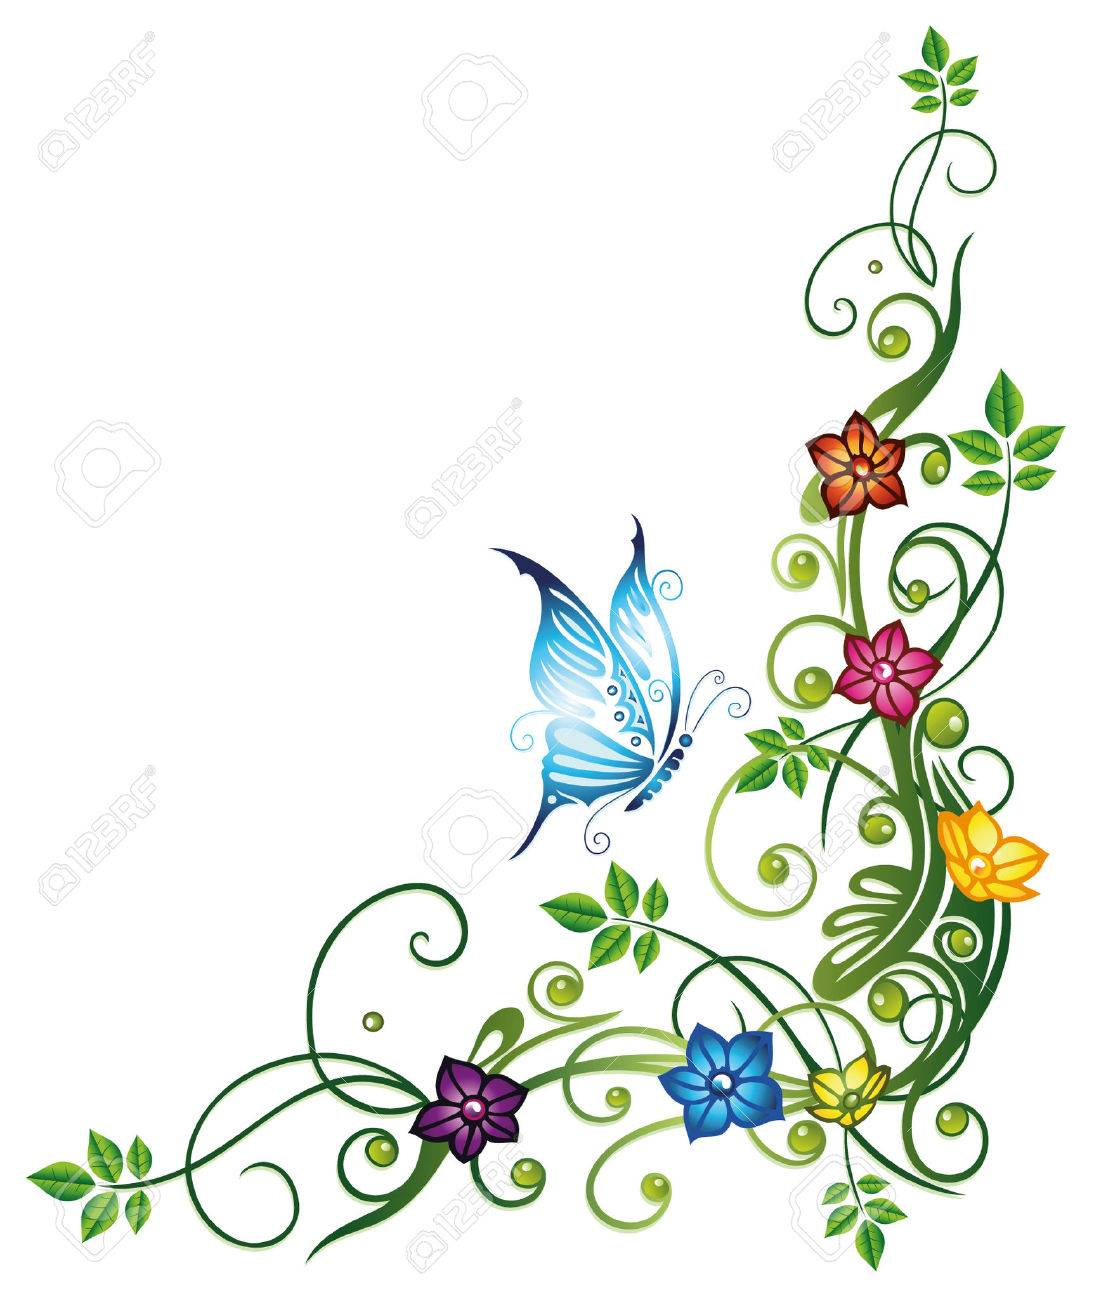 Leaves with colorful blossoms and butterfly Standard-Bild - 23246866